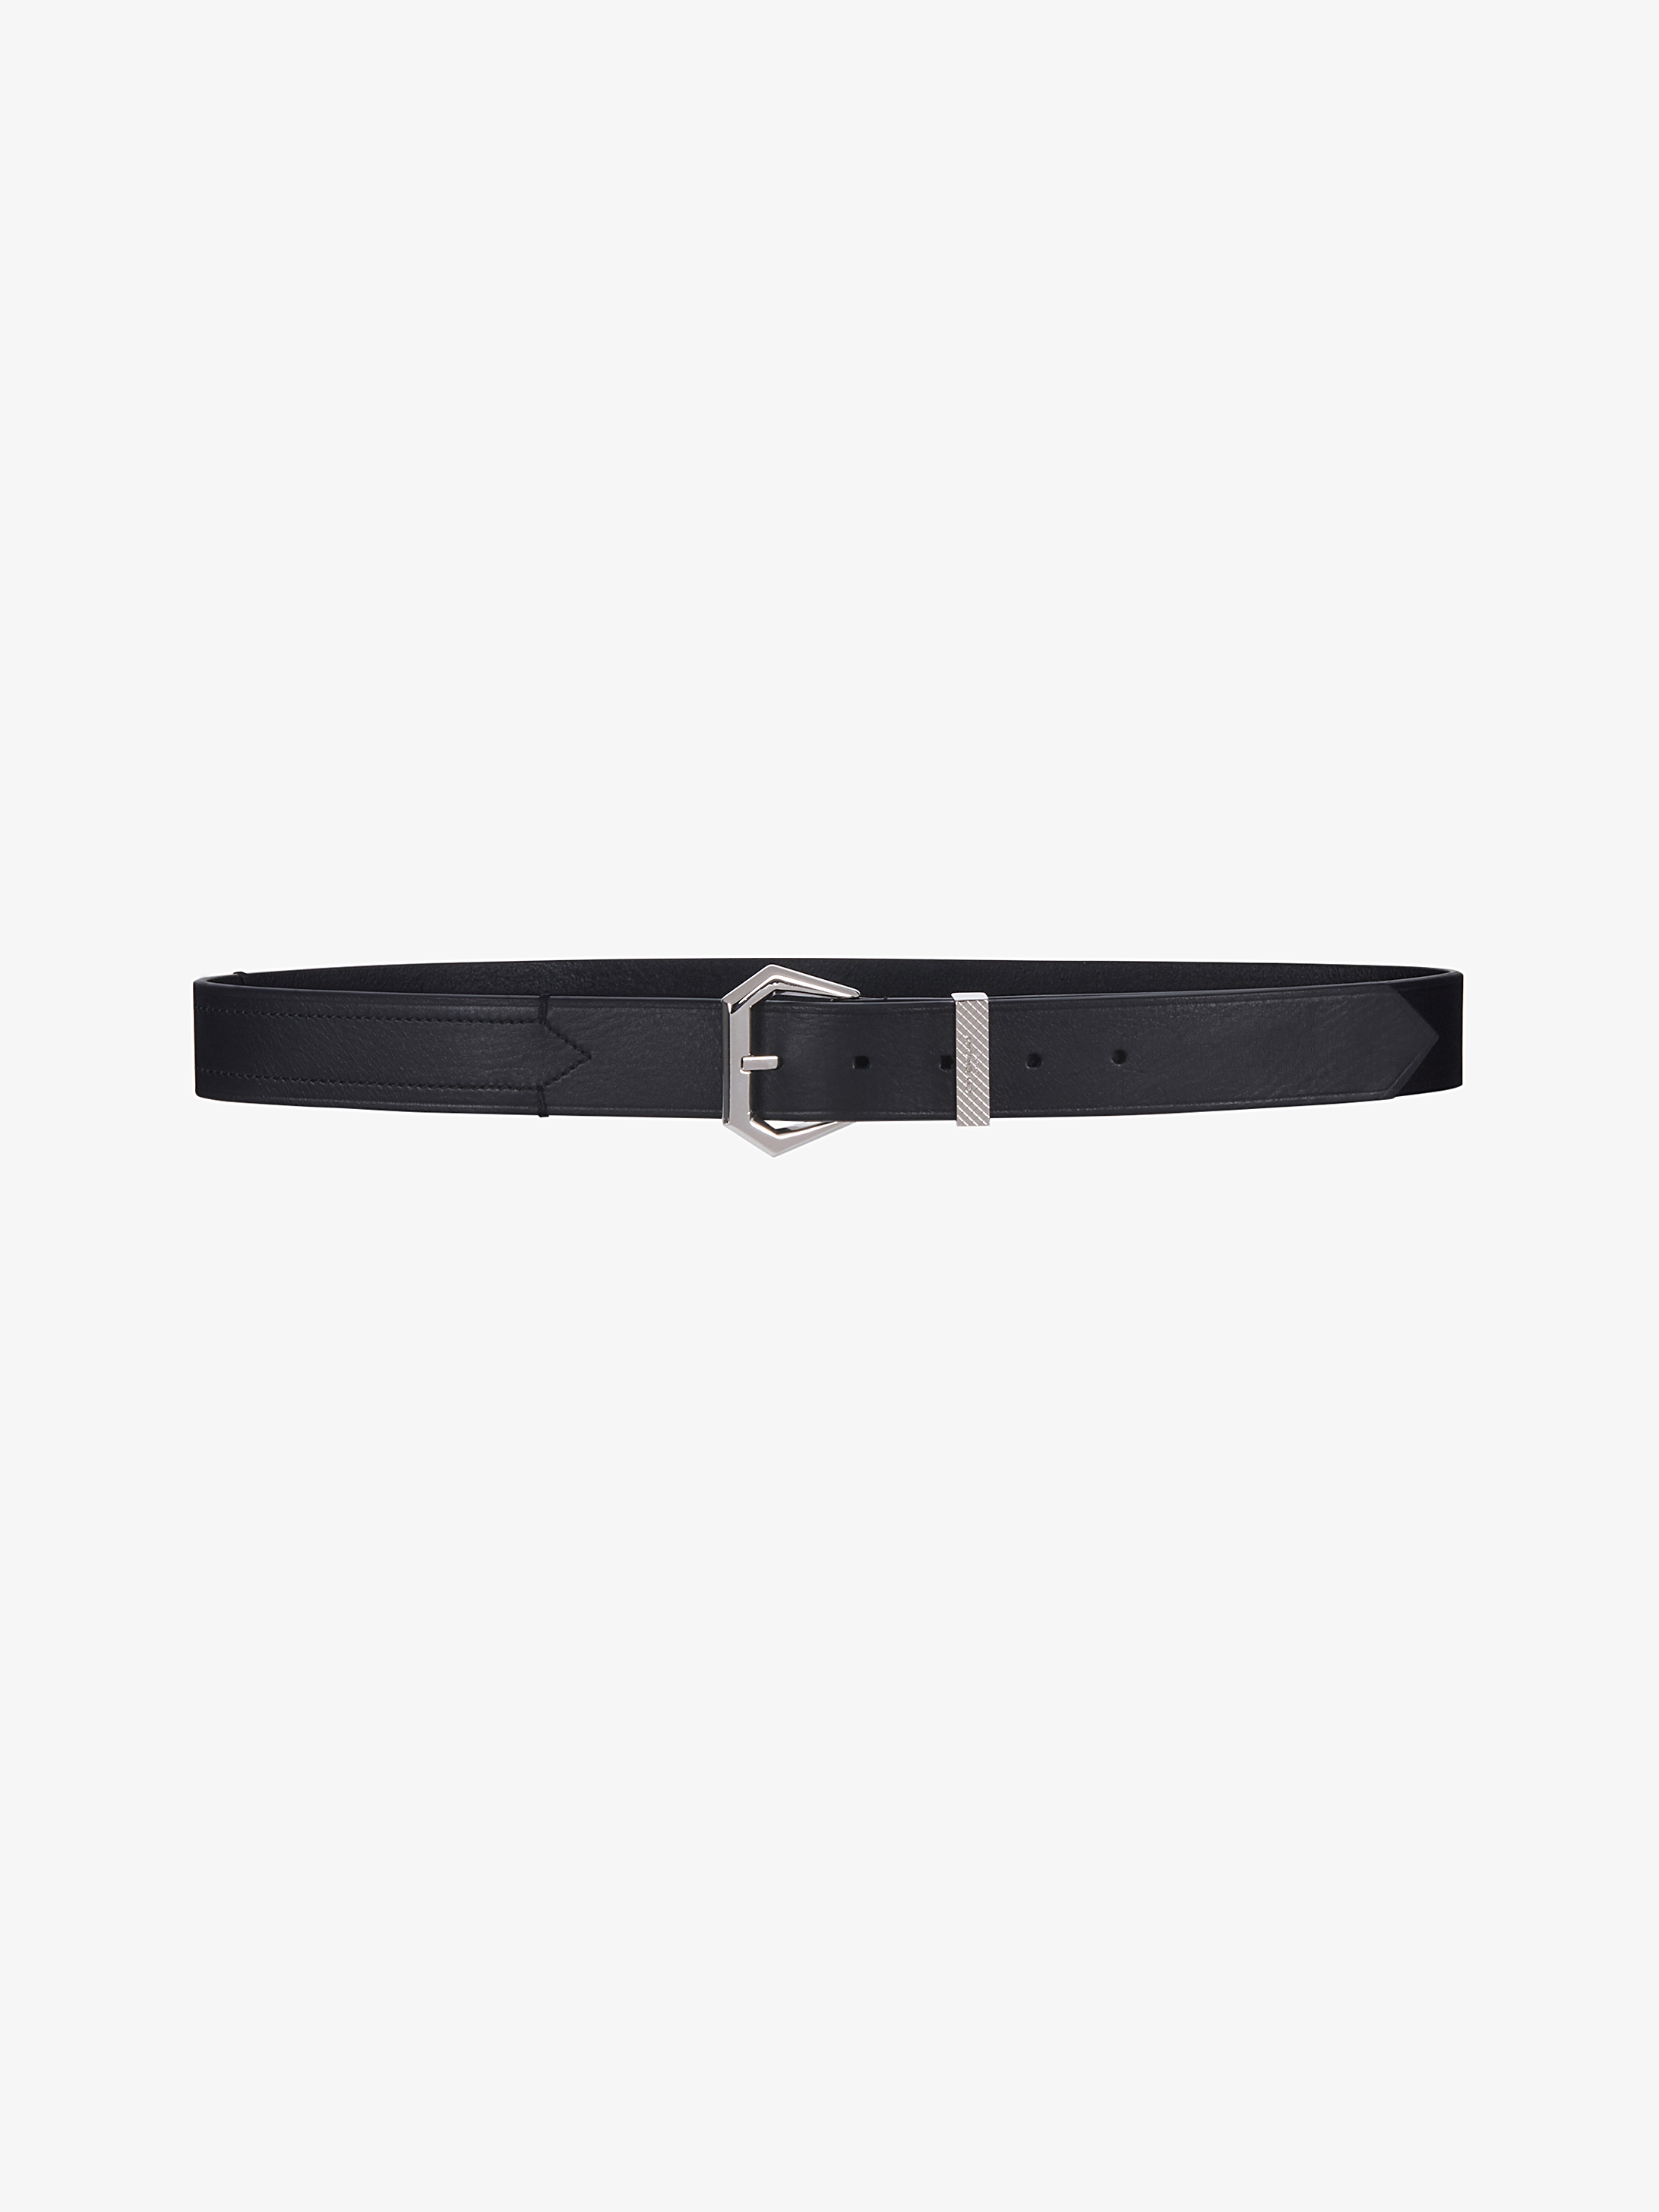 Hexagonal buckle belt in leather